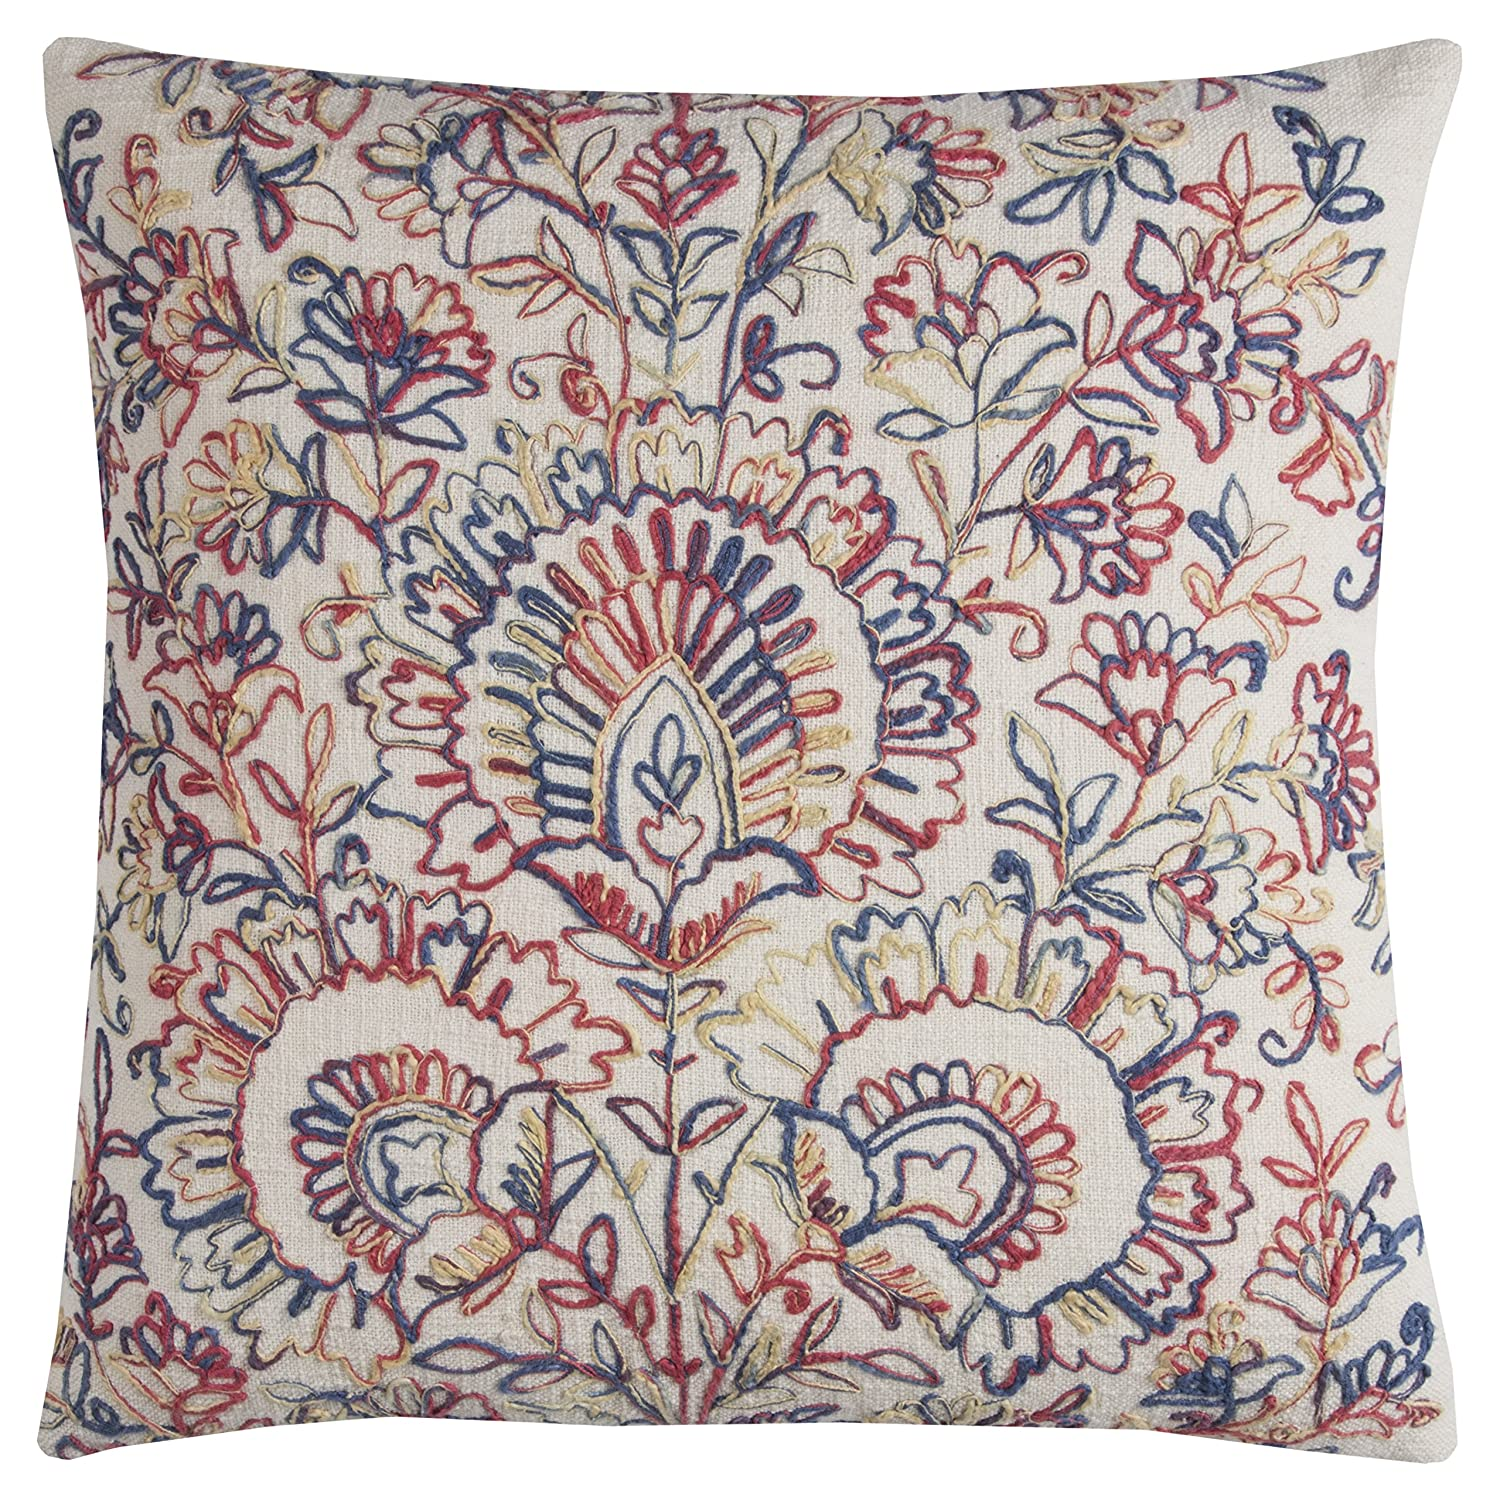 Rizzy Home T11382 Decorative Poly Filled Throw Pillow 20 x 20 Multicolor